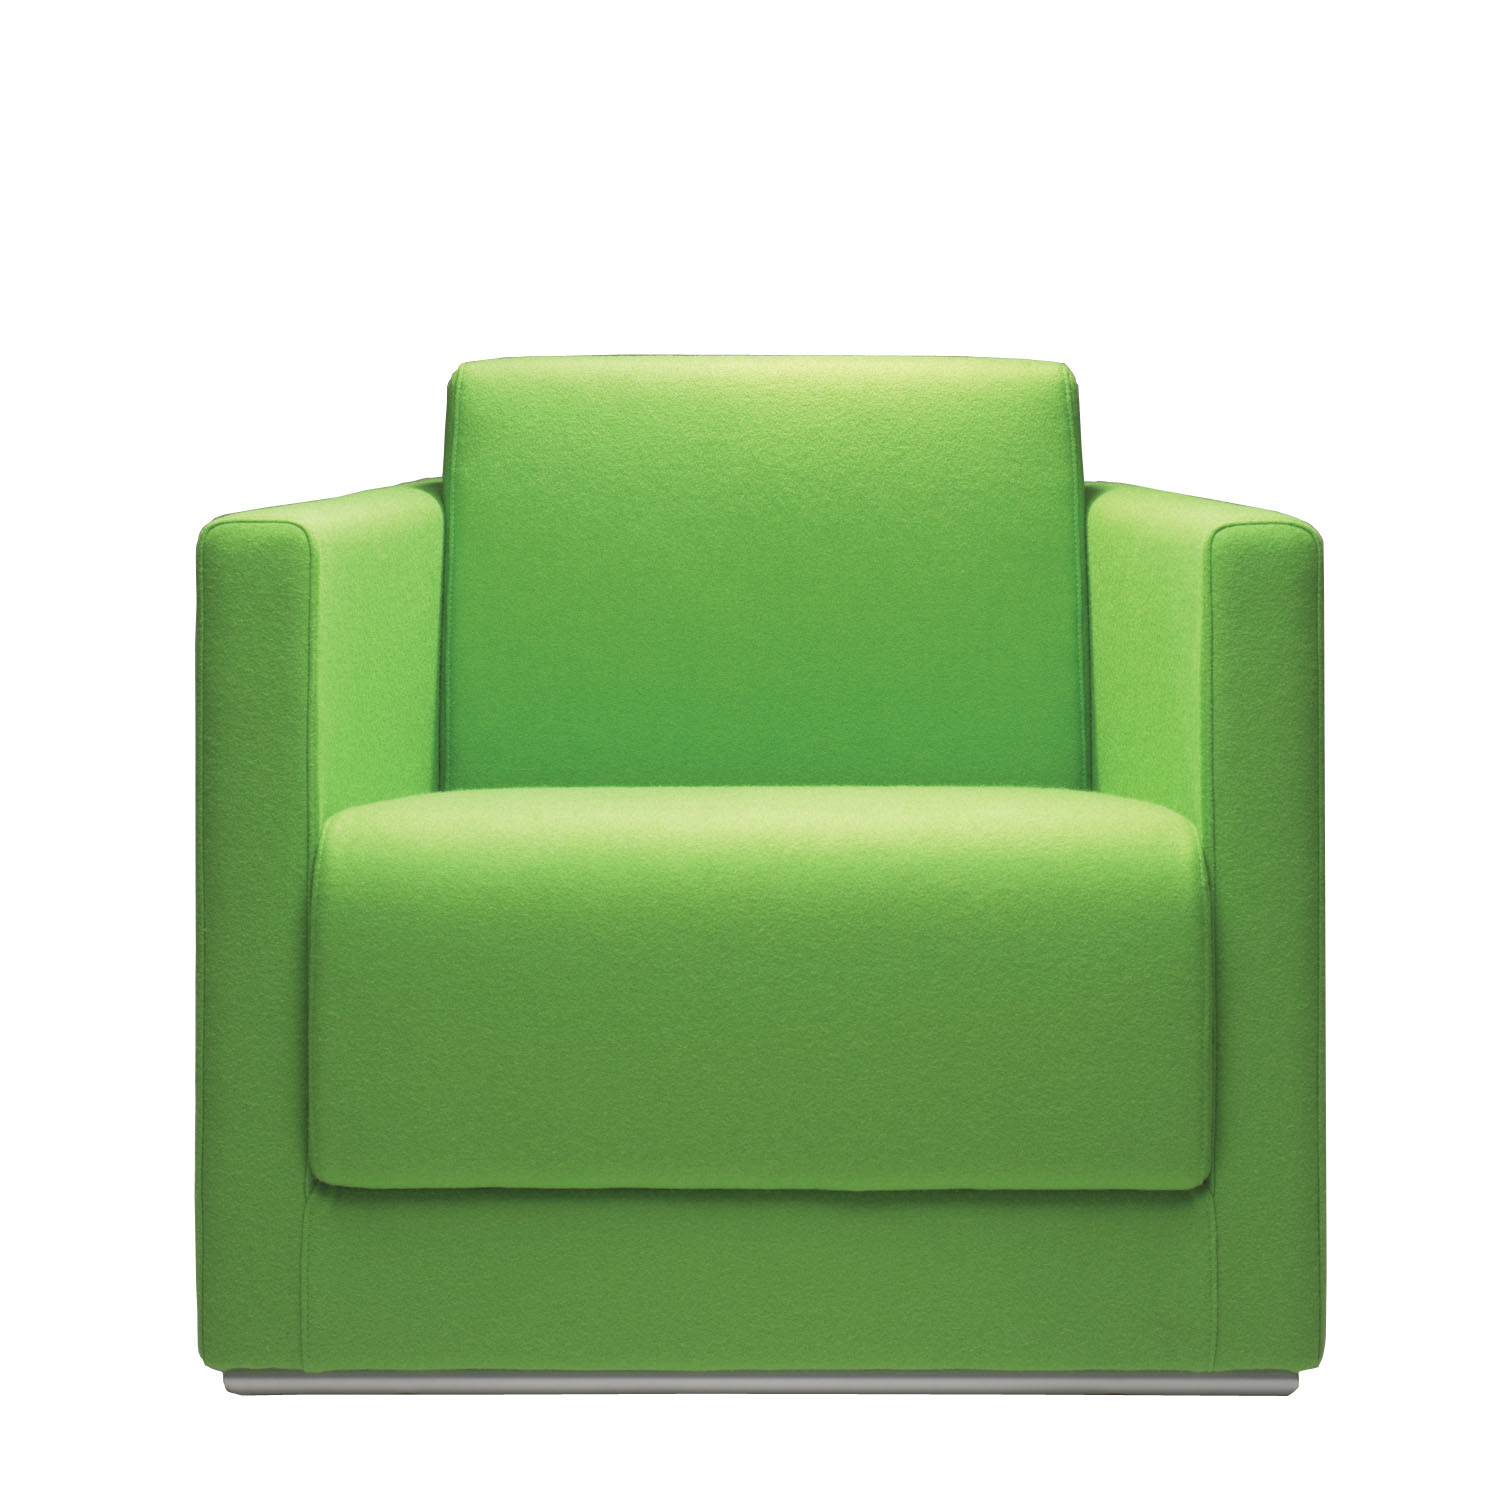 Ortega Armchair by David Fox Design